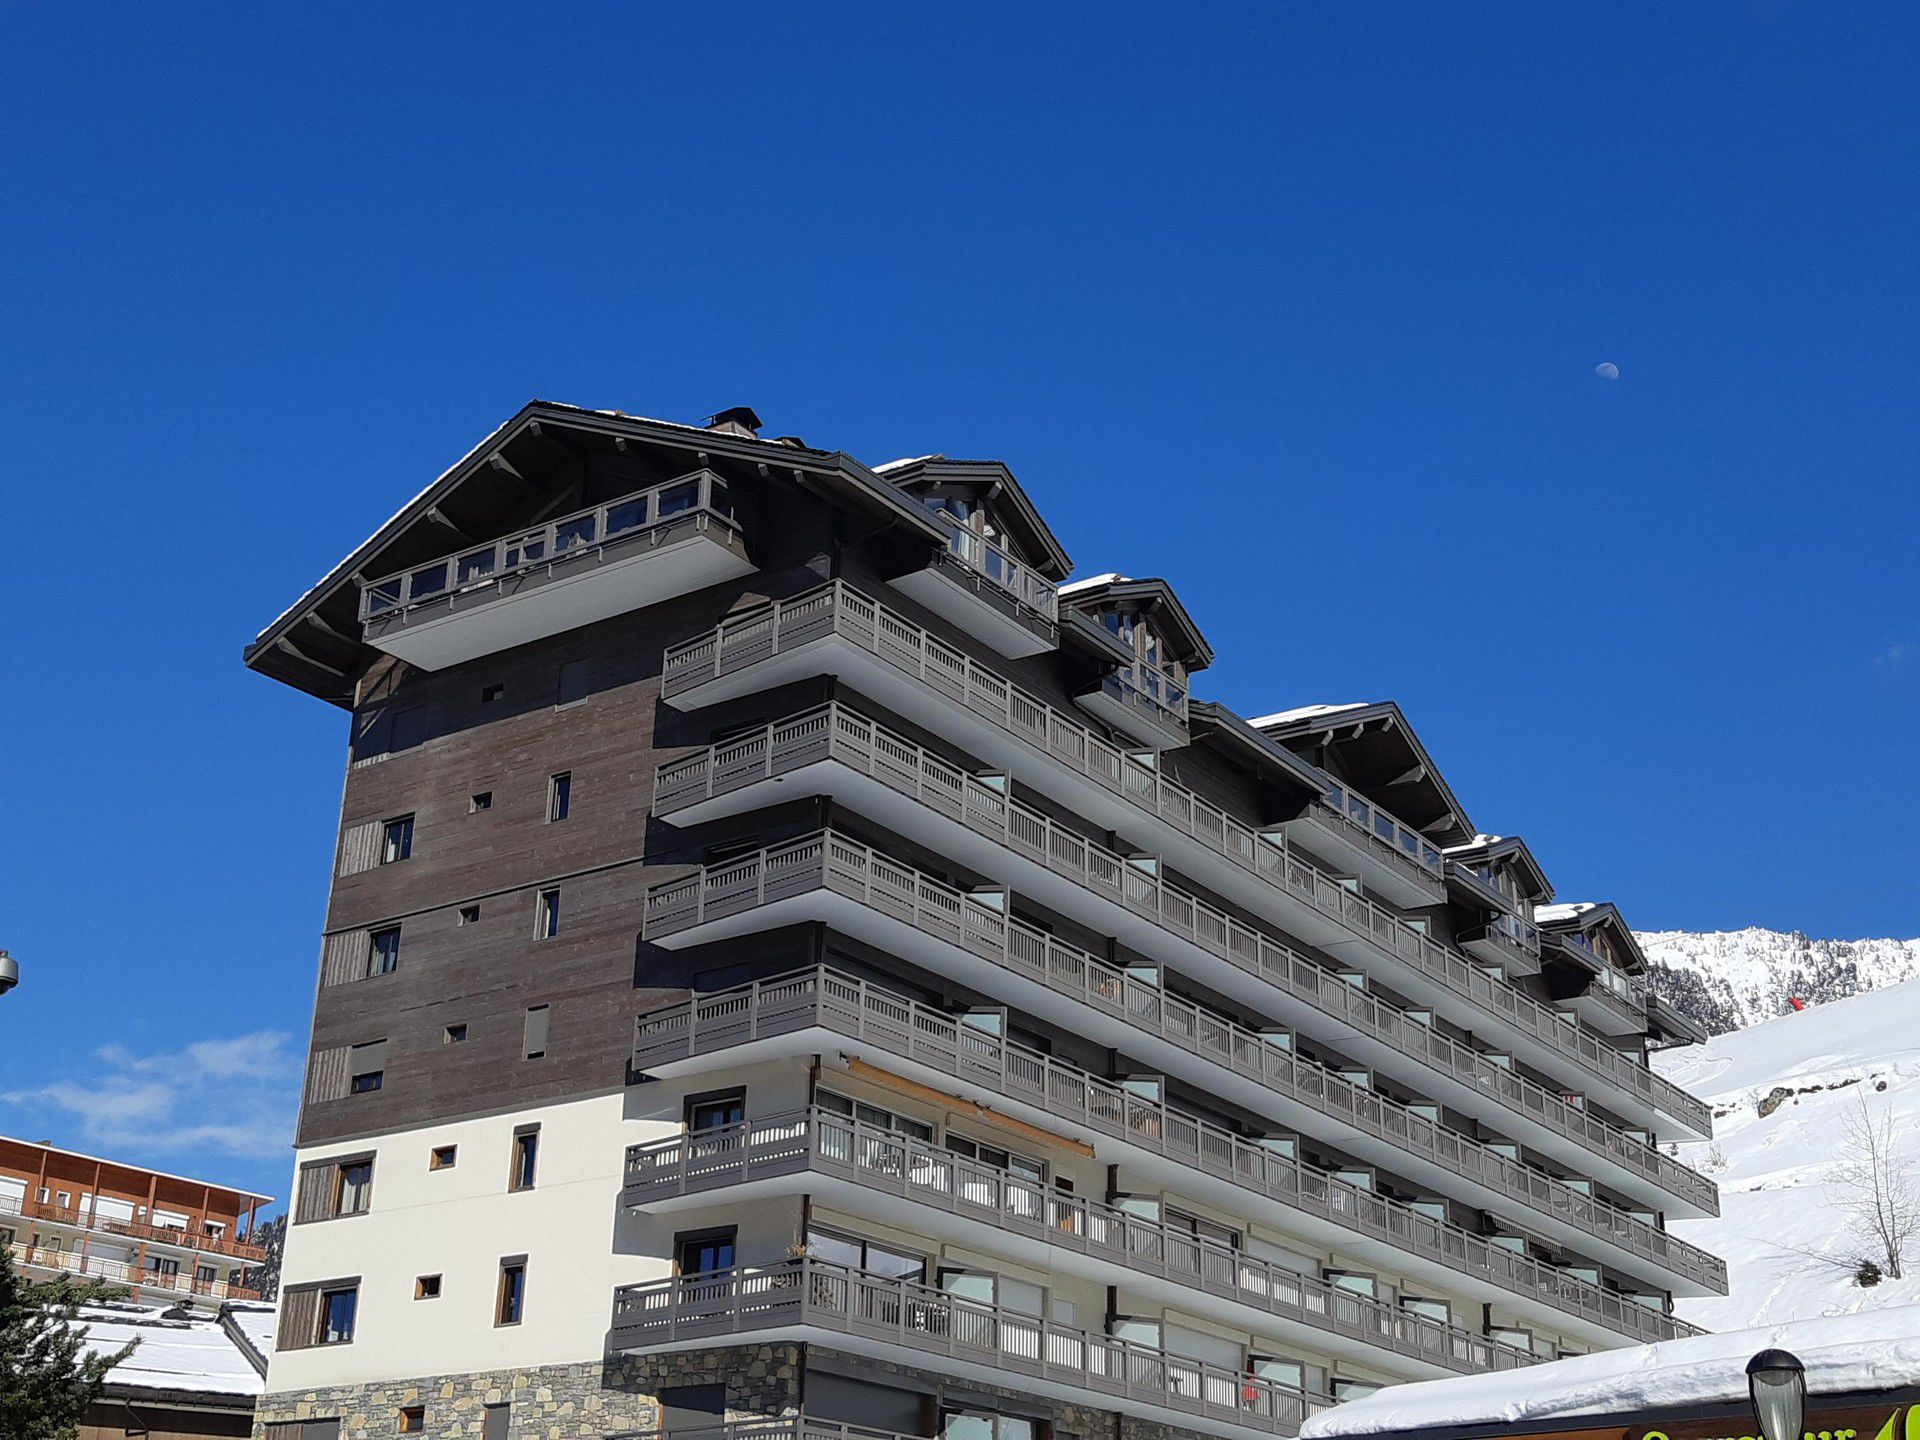 Residence L'Ourse Bleue